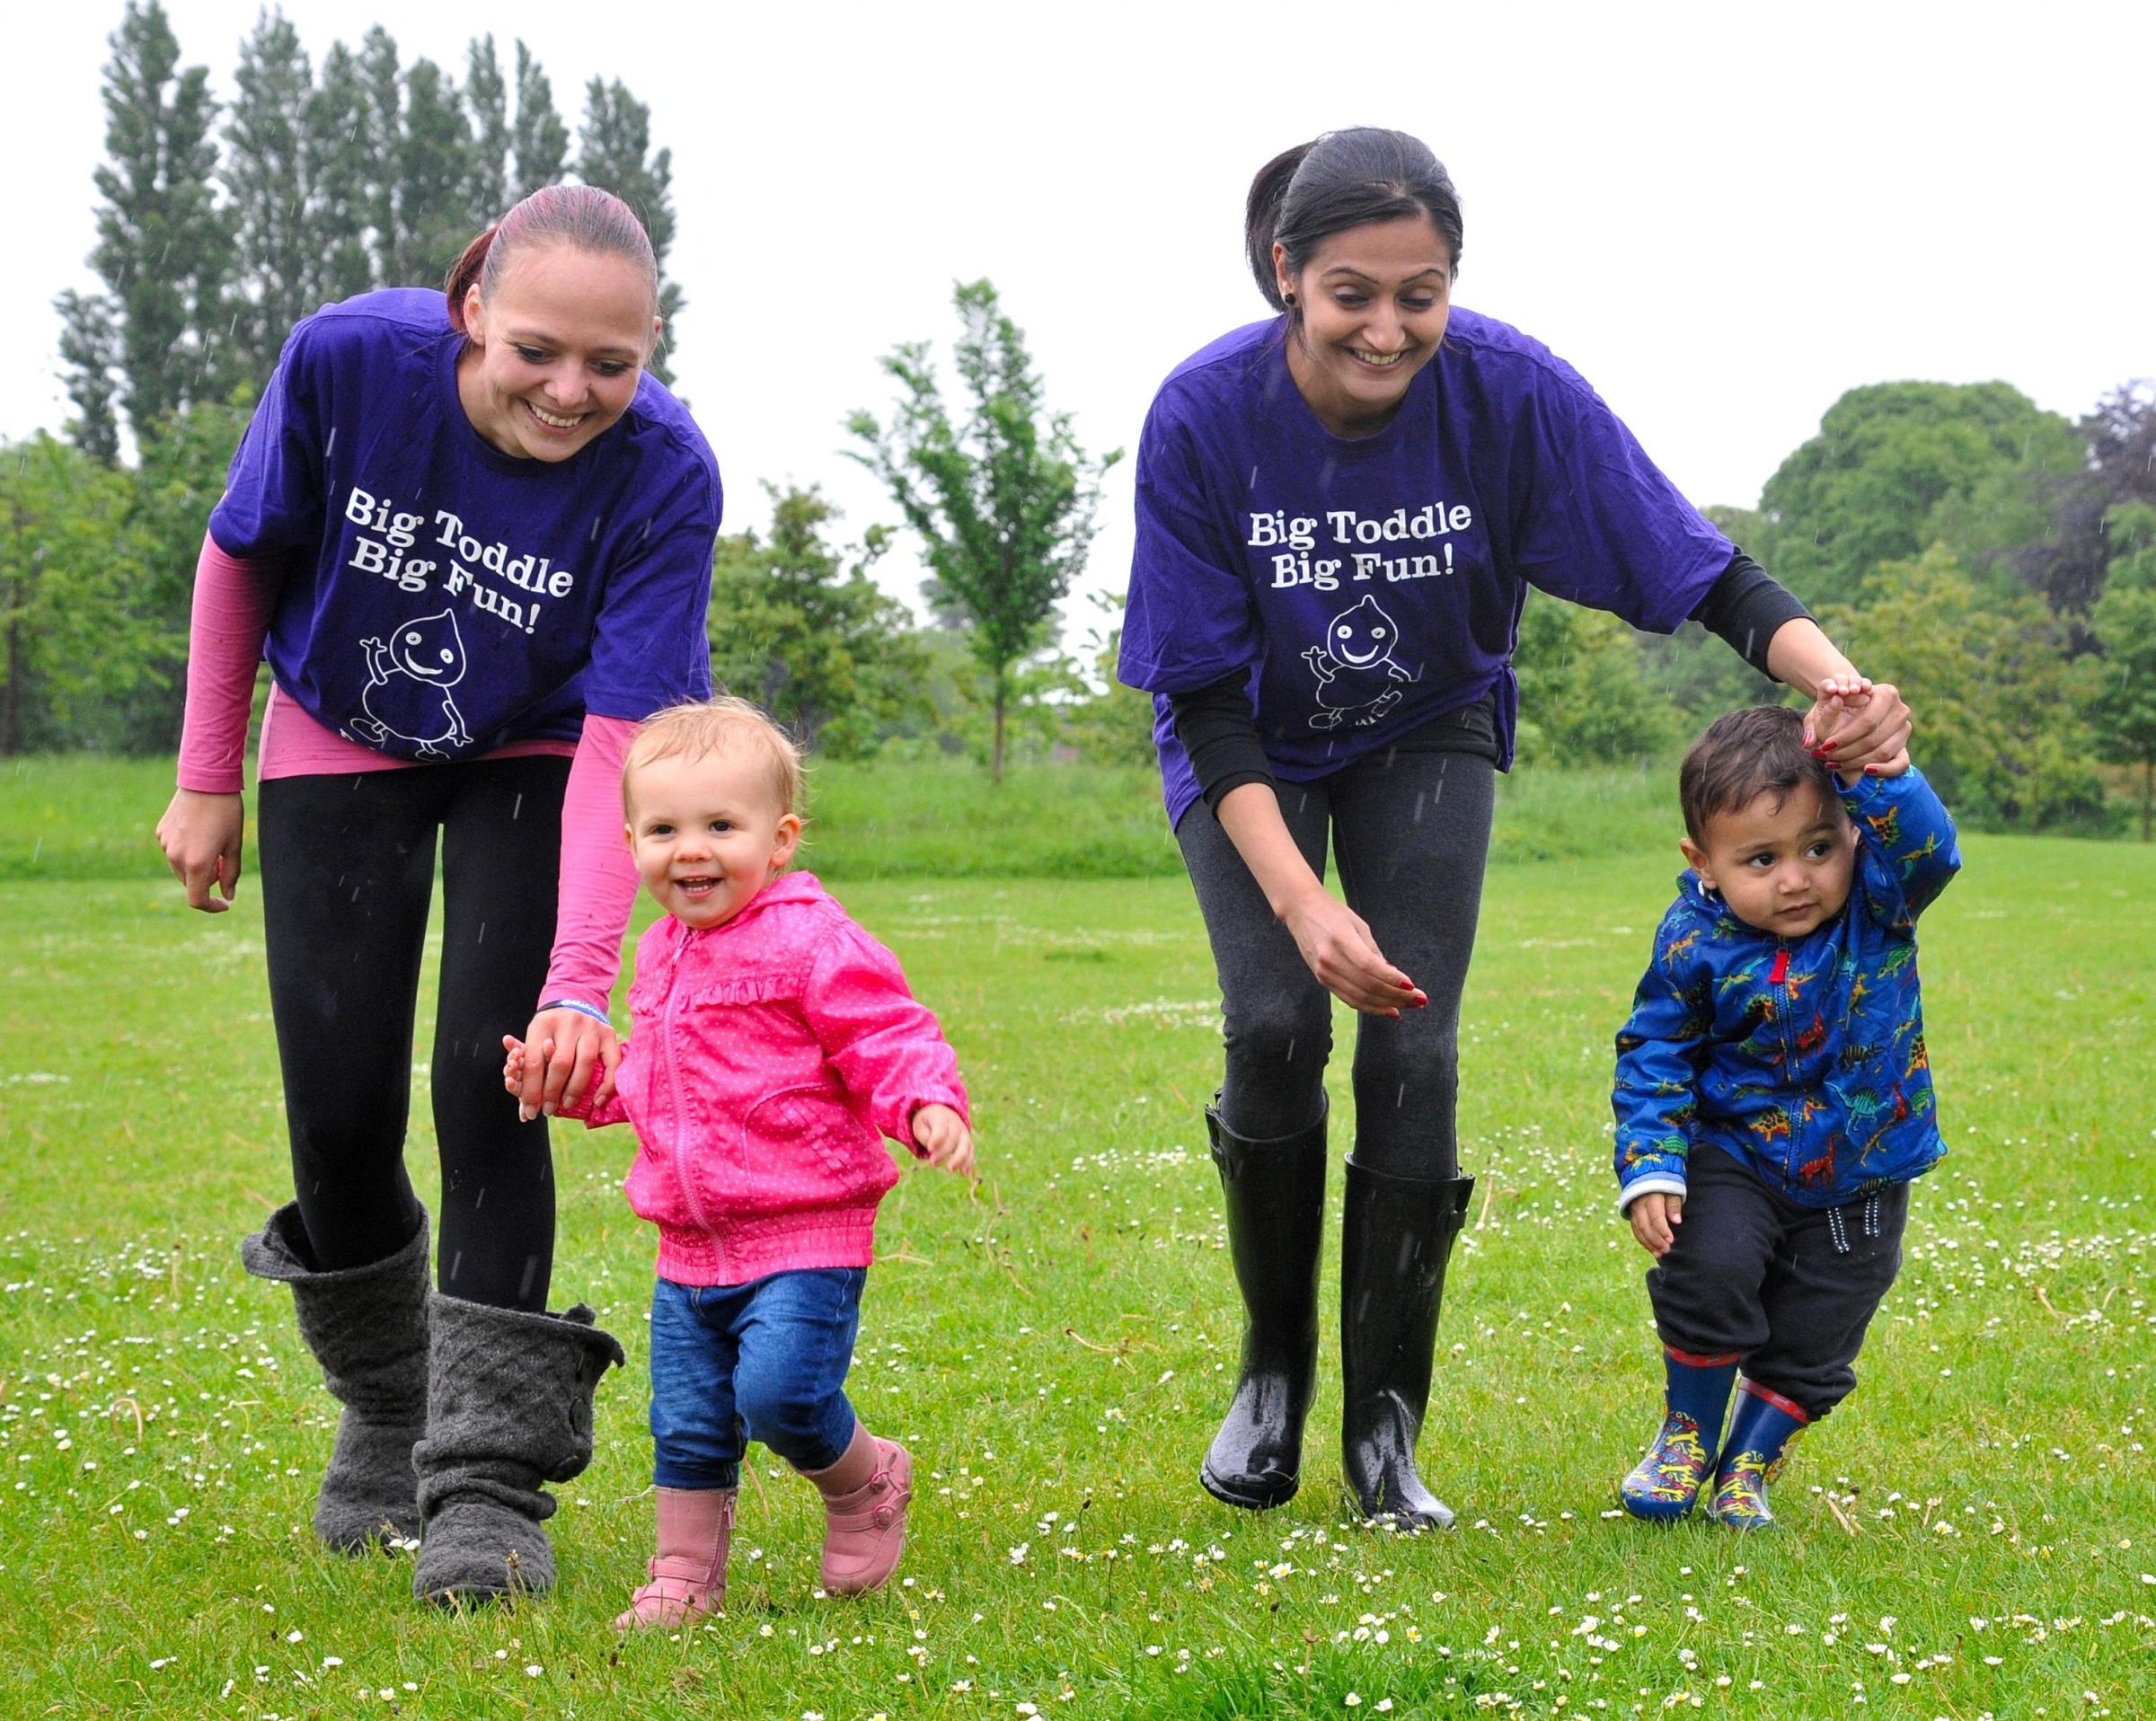 Tots toddle in the rain at children's charity event